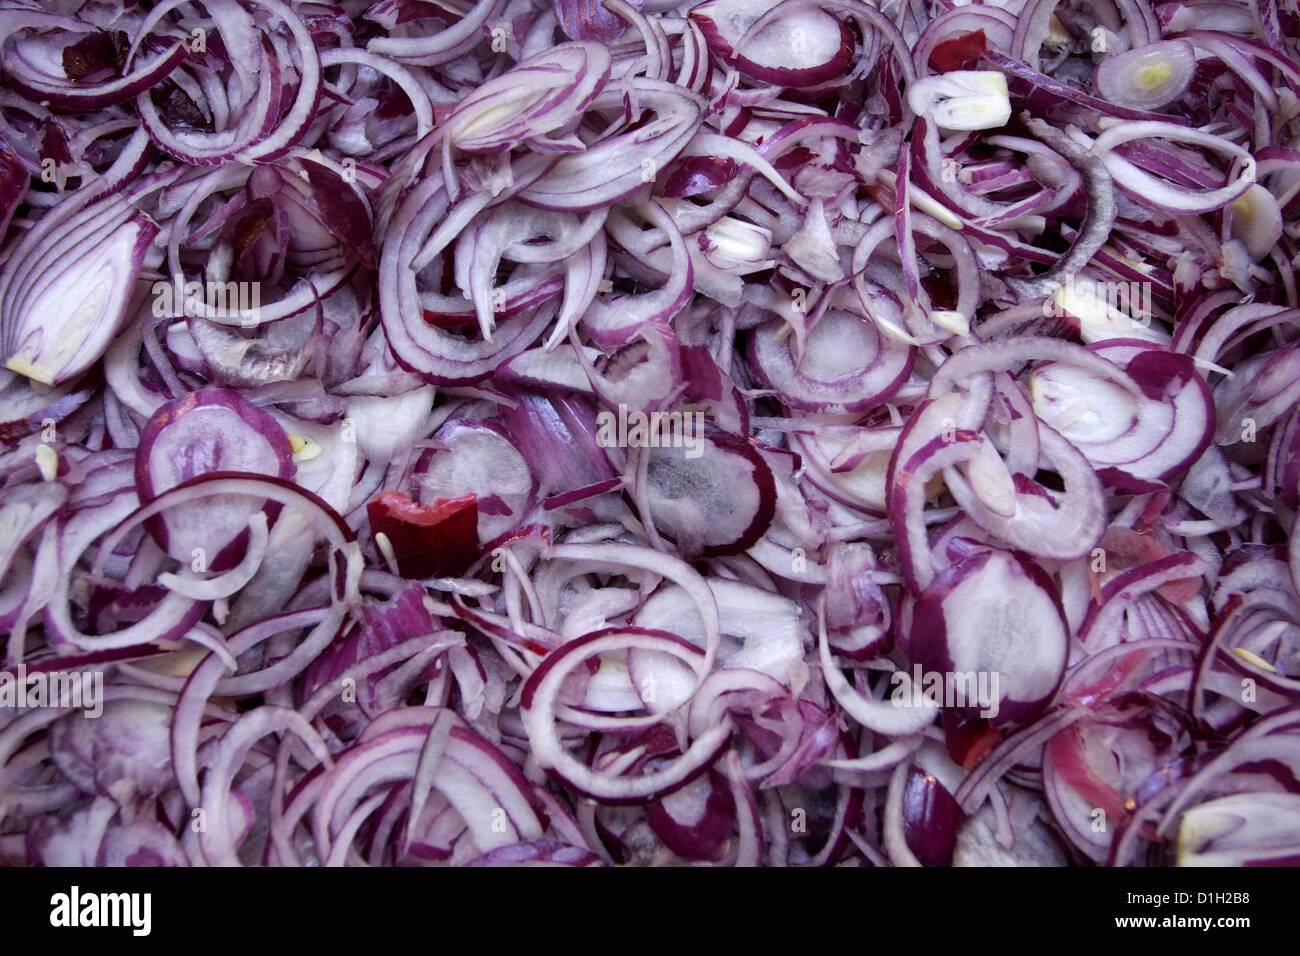 sliced red onion - Stock Image